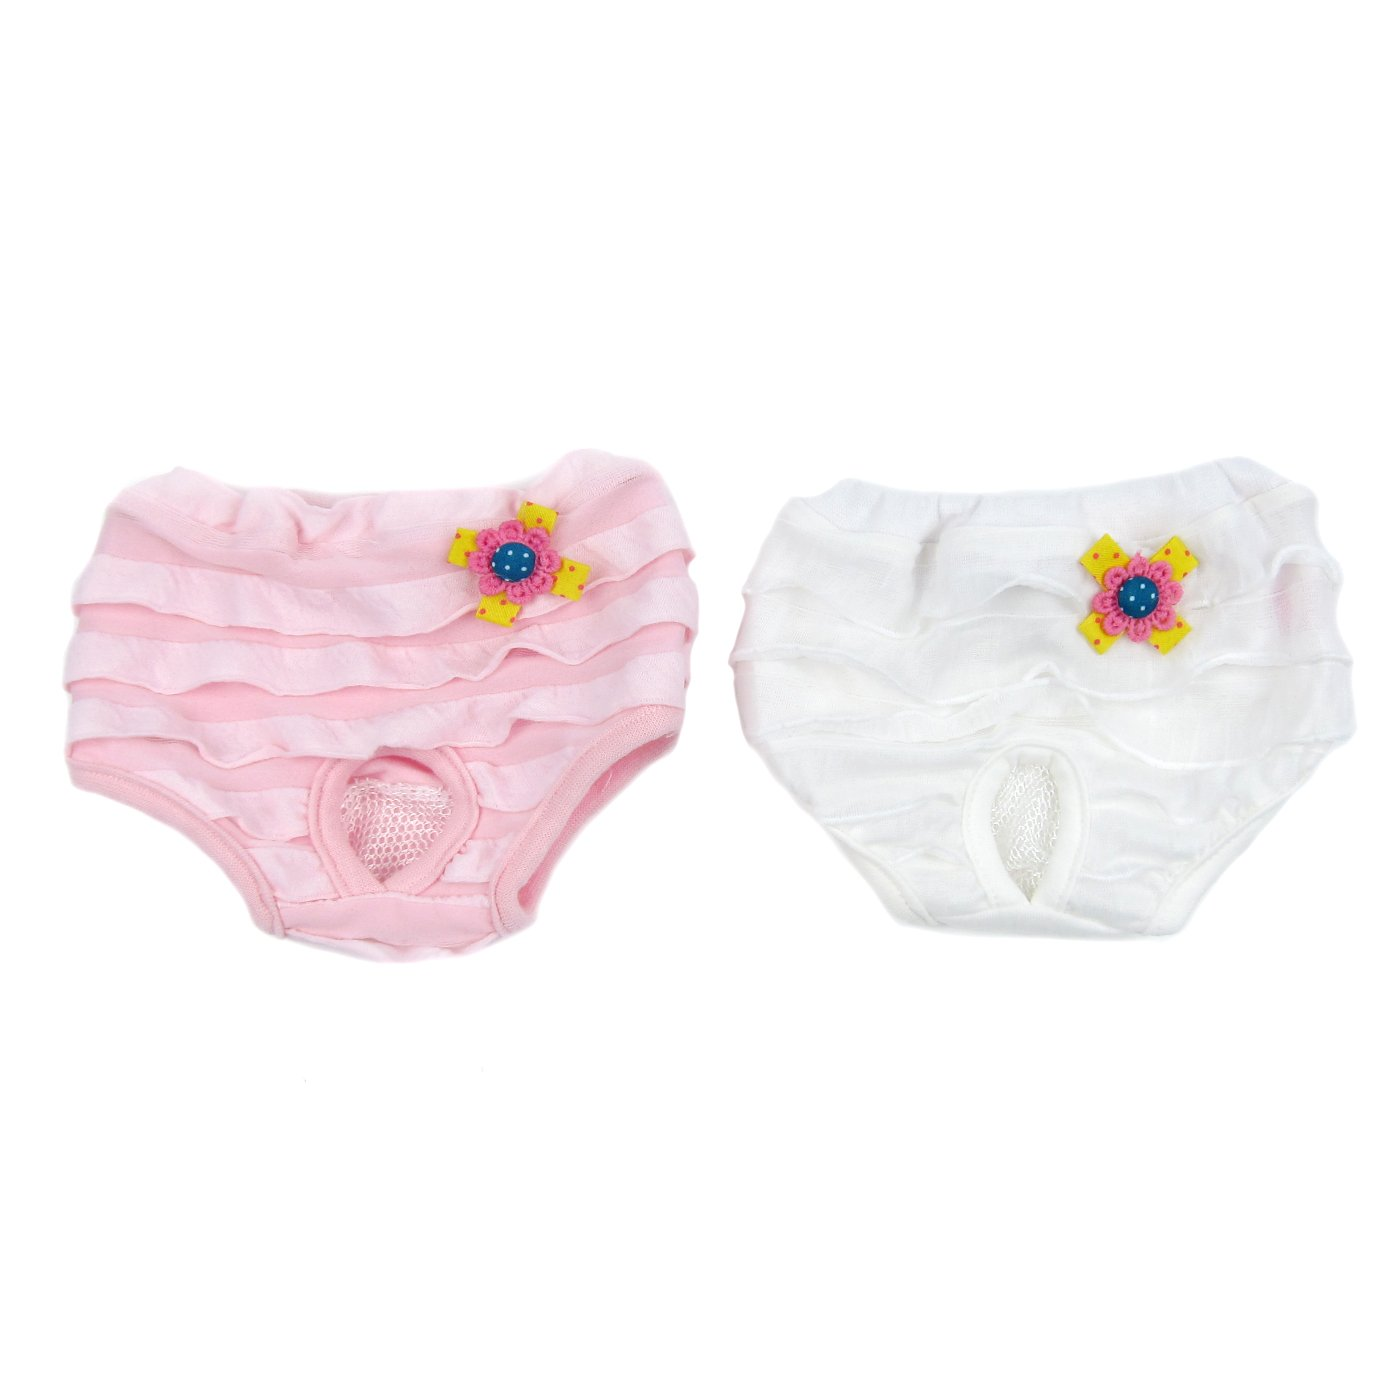 Alfie Pet by Petoga Couture - Fife Diaper Dog Sanitary Pantie 2-Piece Set - Colors: Pink and White, Size: Medium (for Girl Dogs)